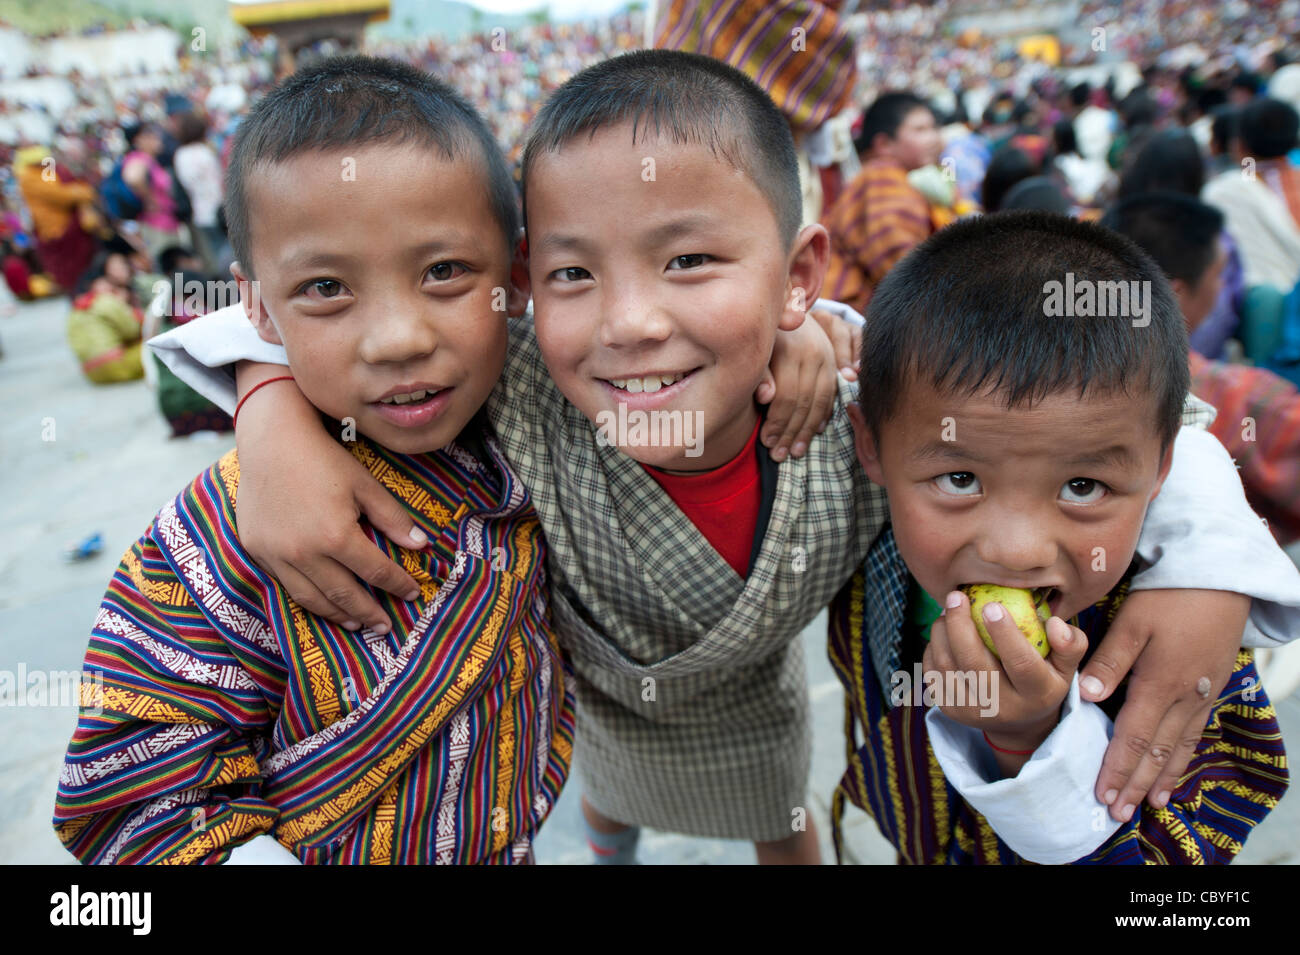 Asia, Bhutan, Cham, children, playing, Thimpu, Tibet, Tsechu - Stock Image